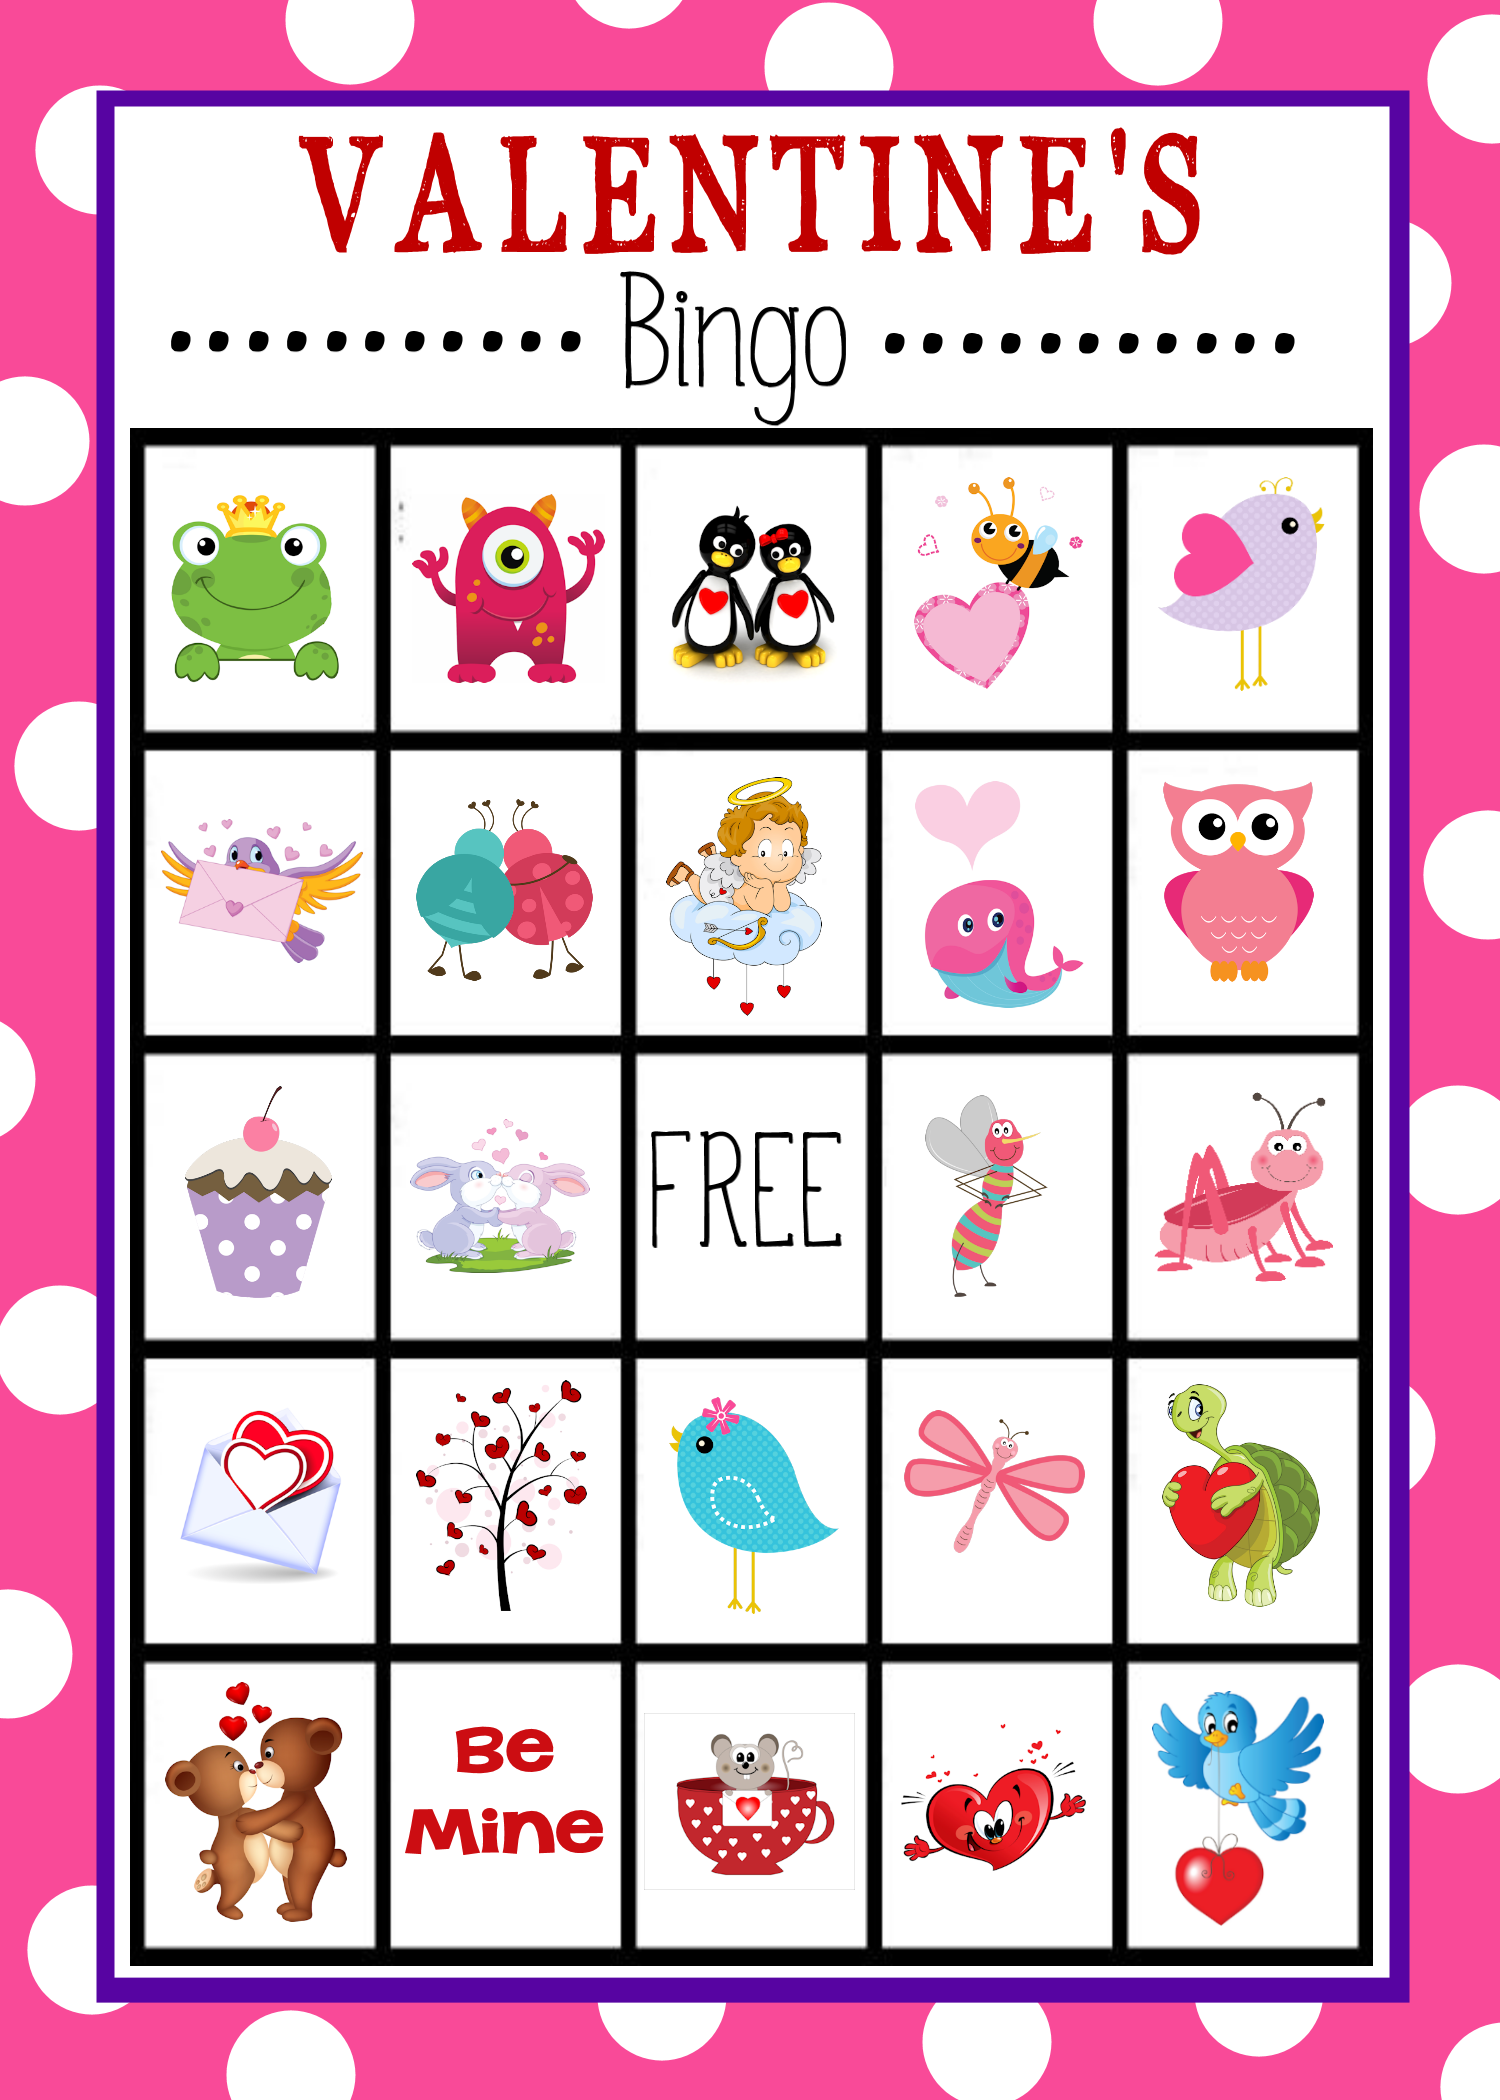 Free Printable Valentines Day Bingo Game Crazy Little Projects – Christian Valentine Cards for Kids